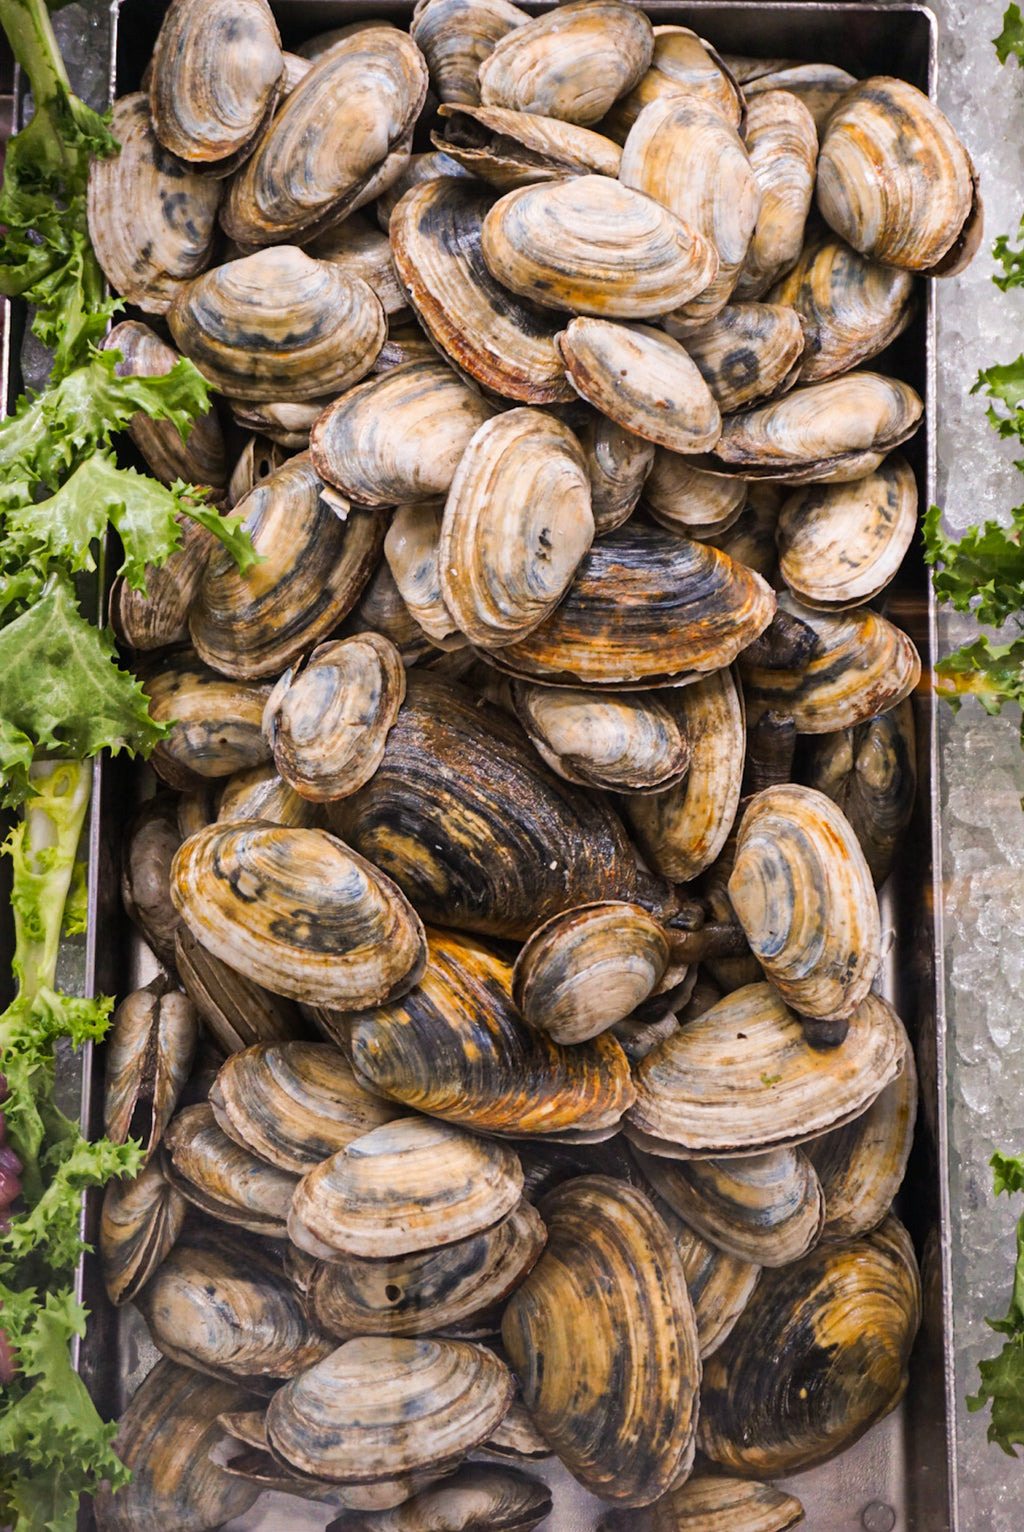 Steamers - New Canaan